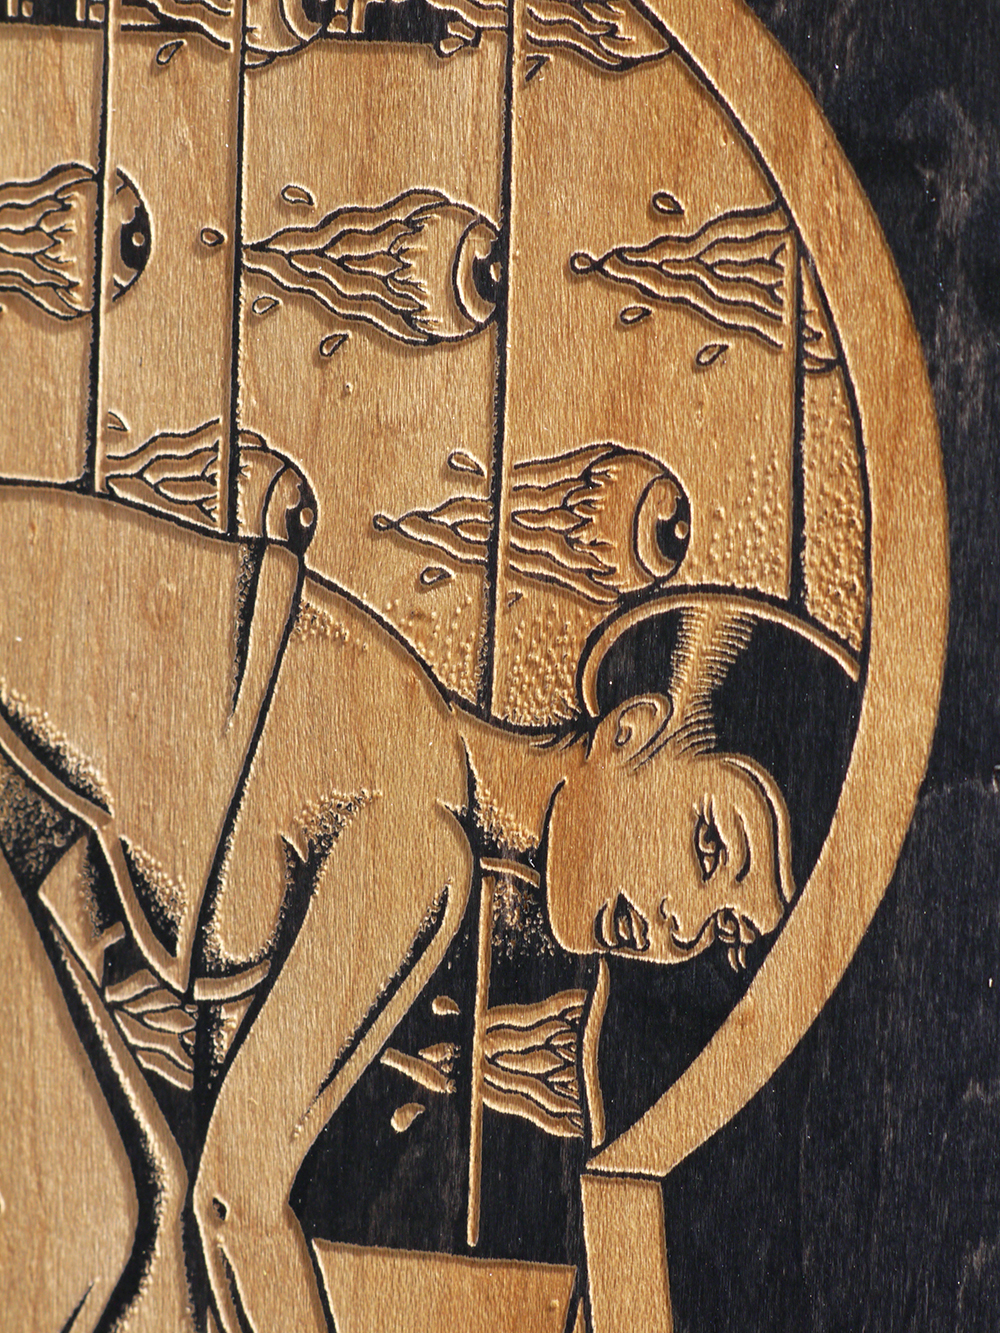 chopping jerks voyeur laser engraved skateboard